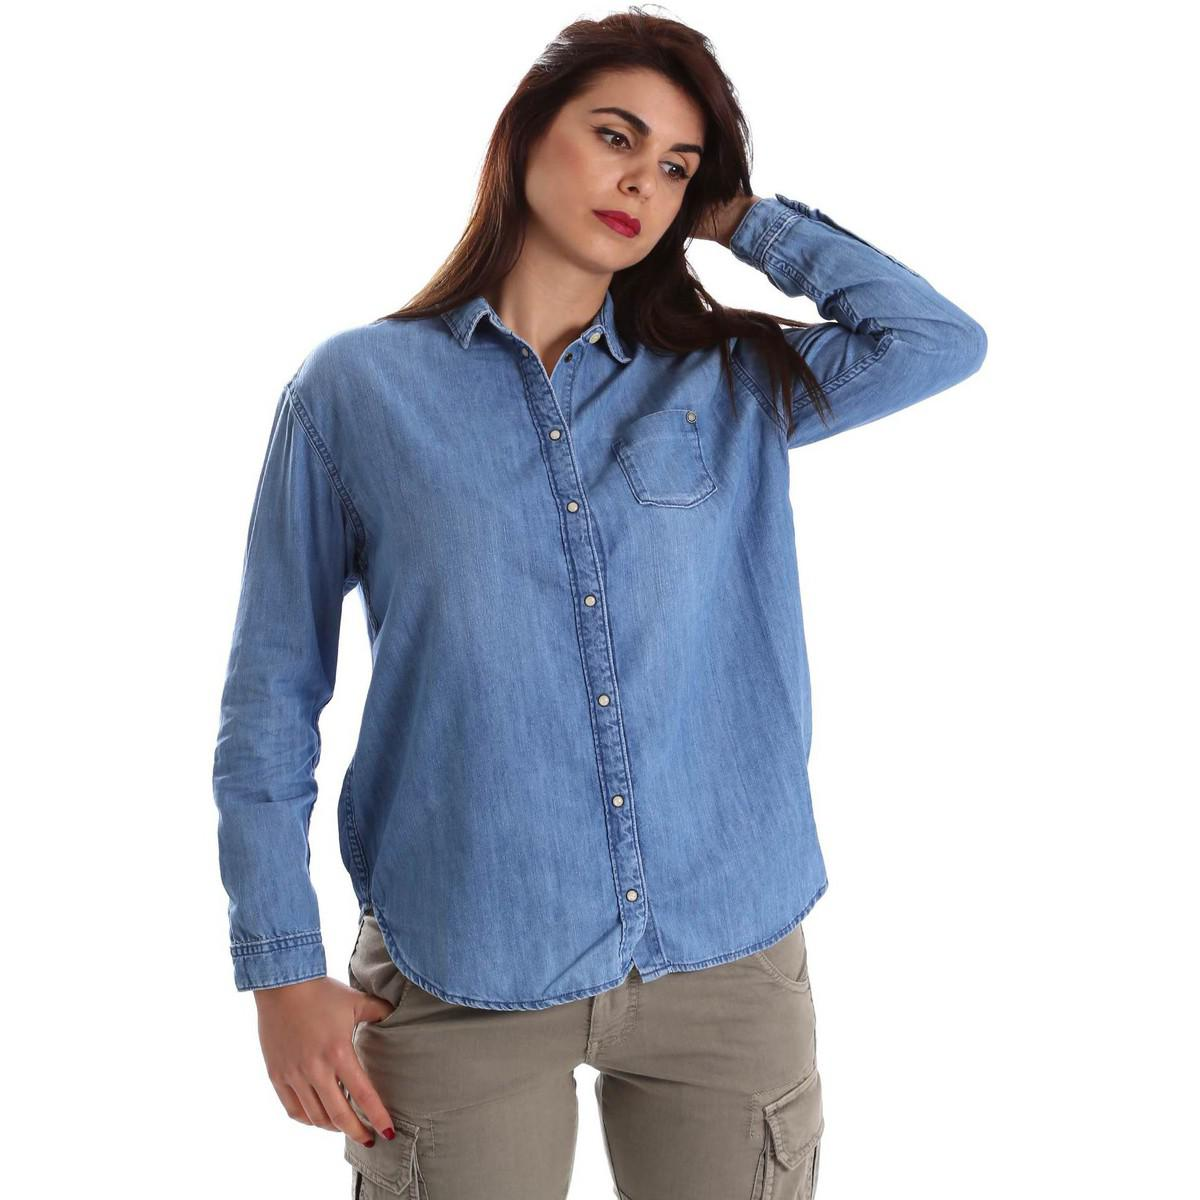 Womens Ayumi Blouse Pepe Jeans London Buy Cheap Exclusive Discount Pictures Free Shipping Classic lRfXt1jL0w